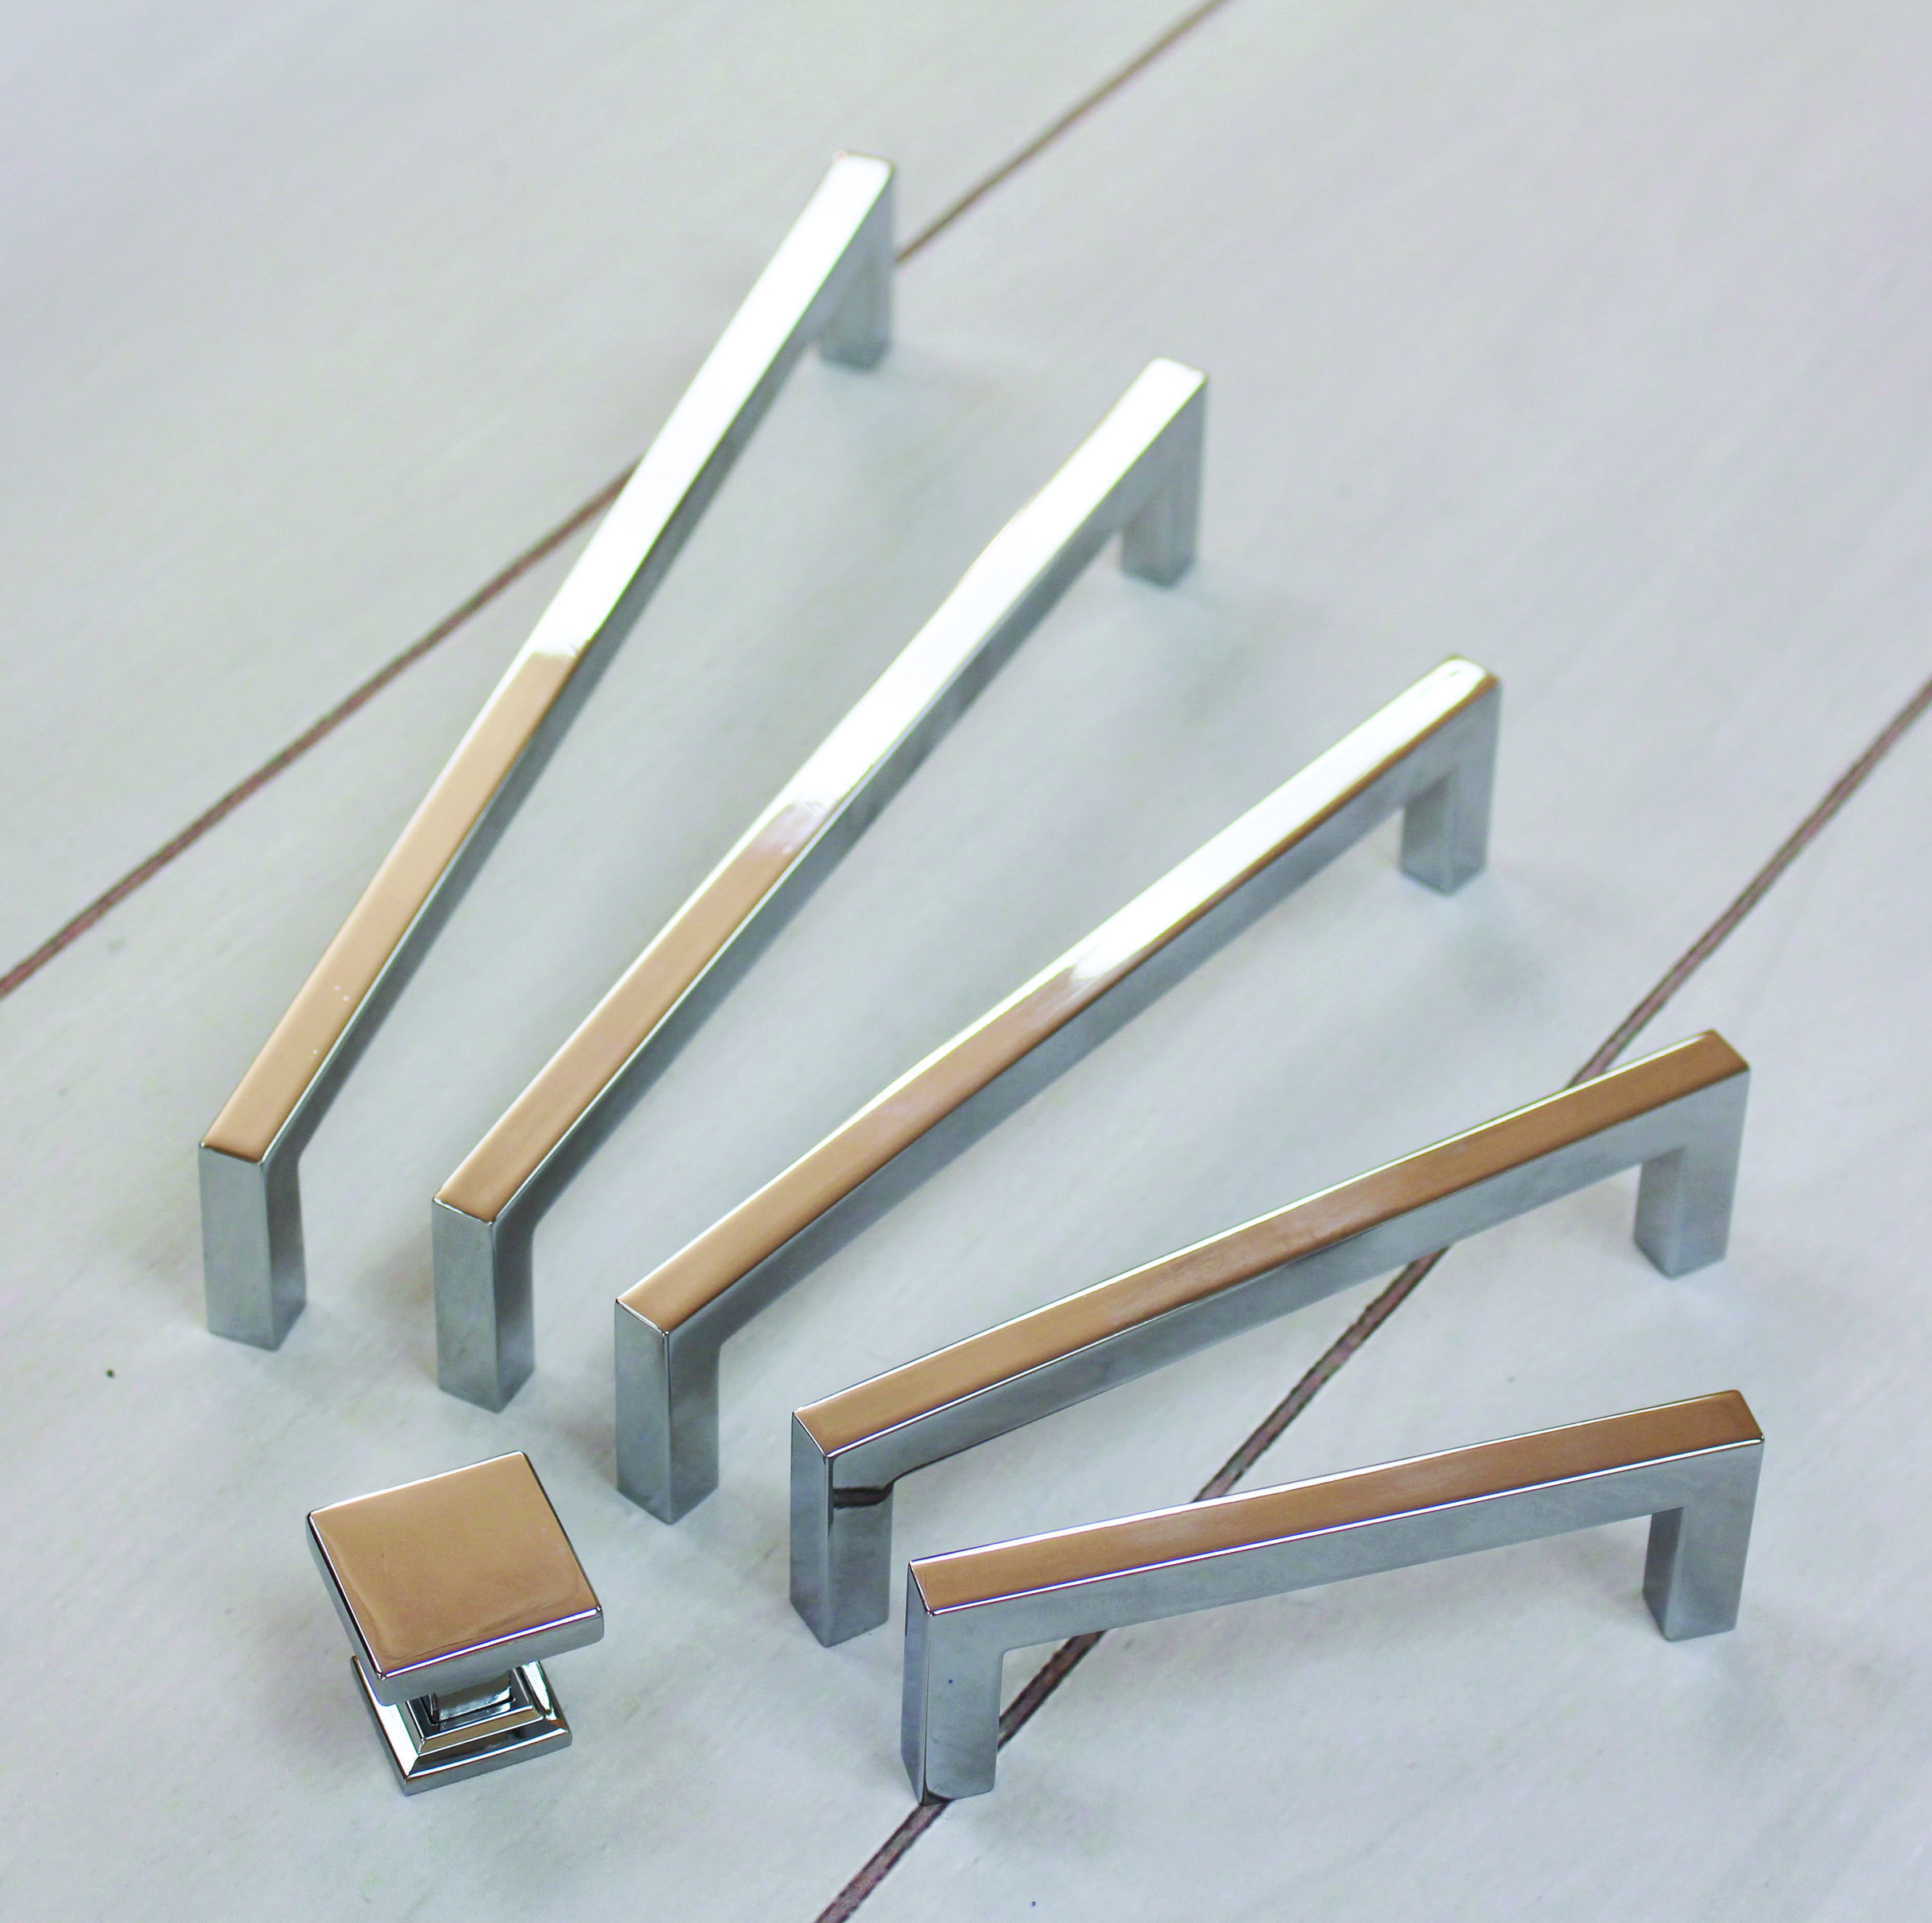 Modern Kitchen Cabinet Handles And Pulls: Contemporary Square Cabinet Pull